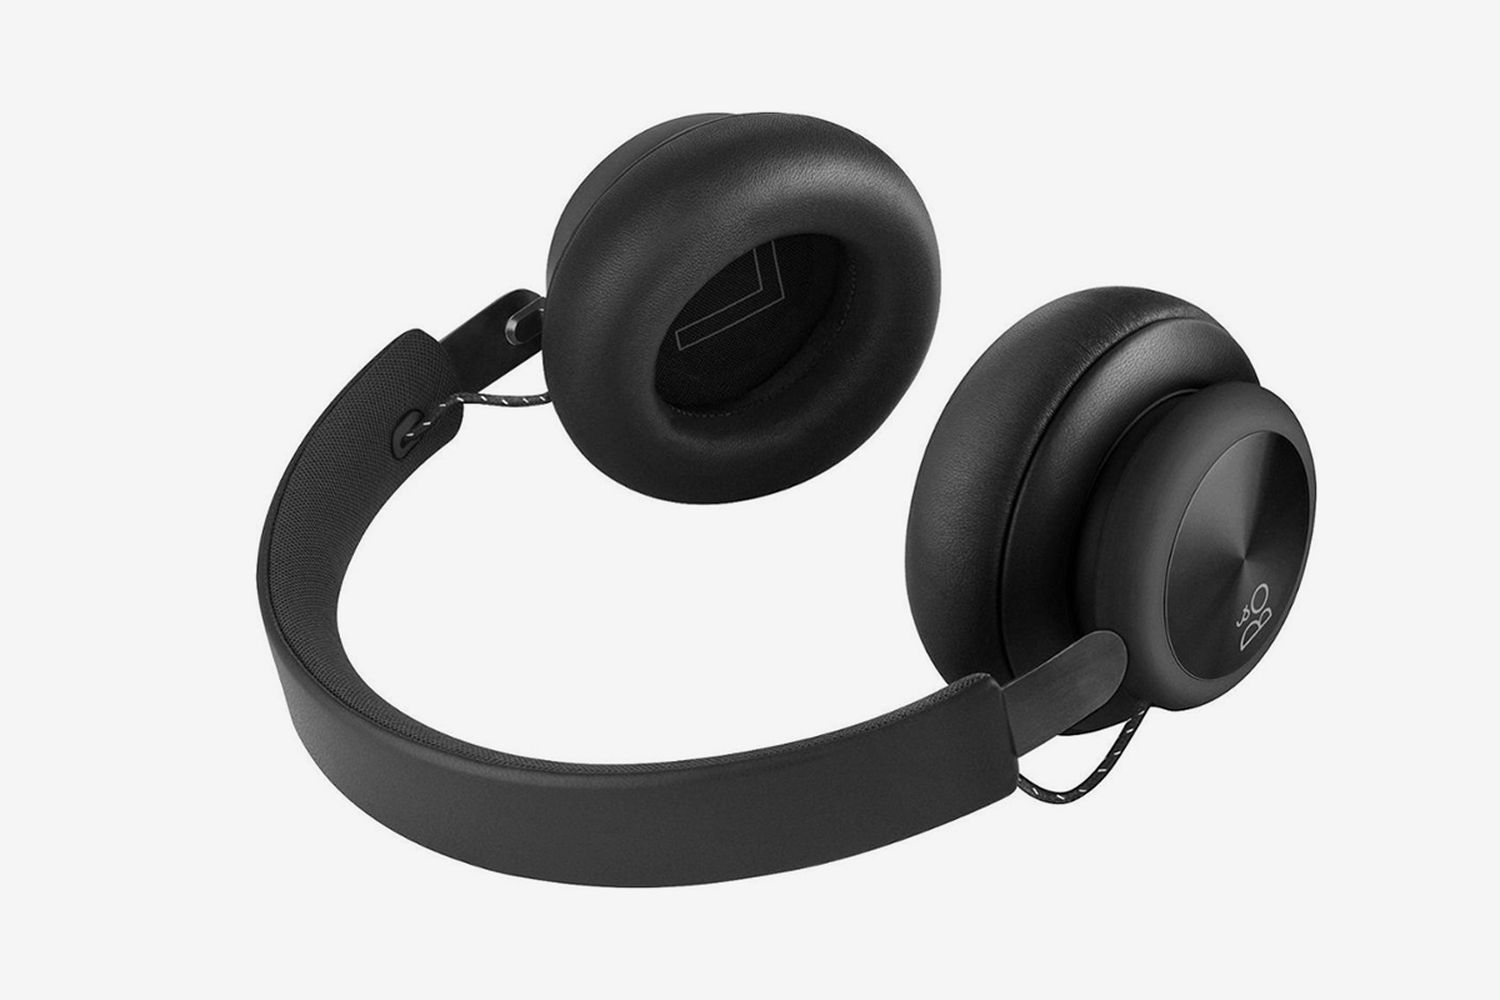 Beoplay H4 Wireless Over-the-Ear Headphones